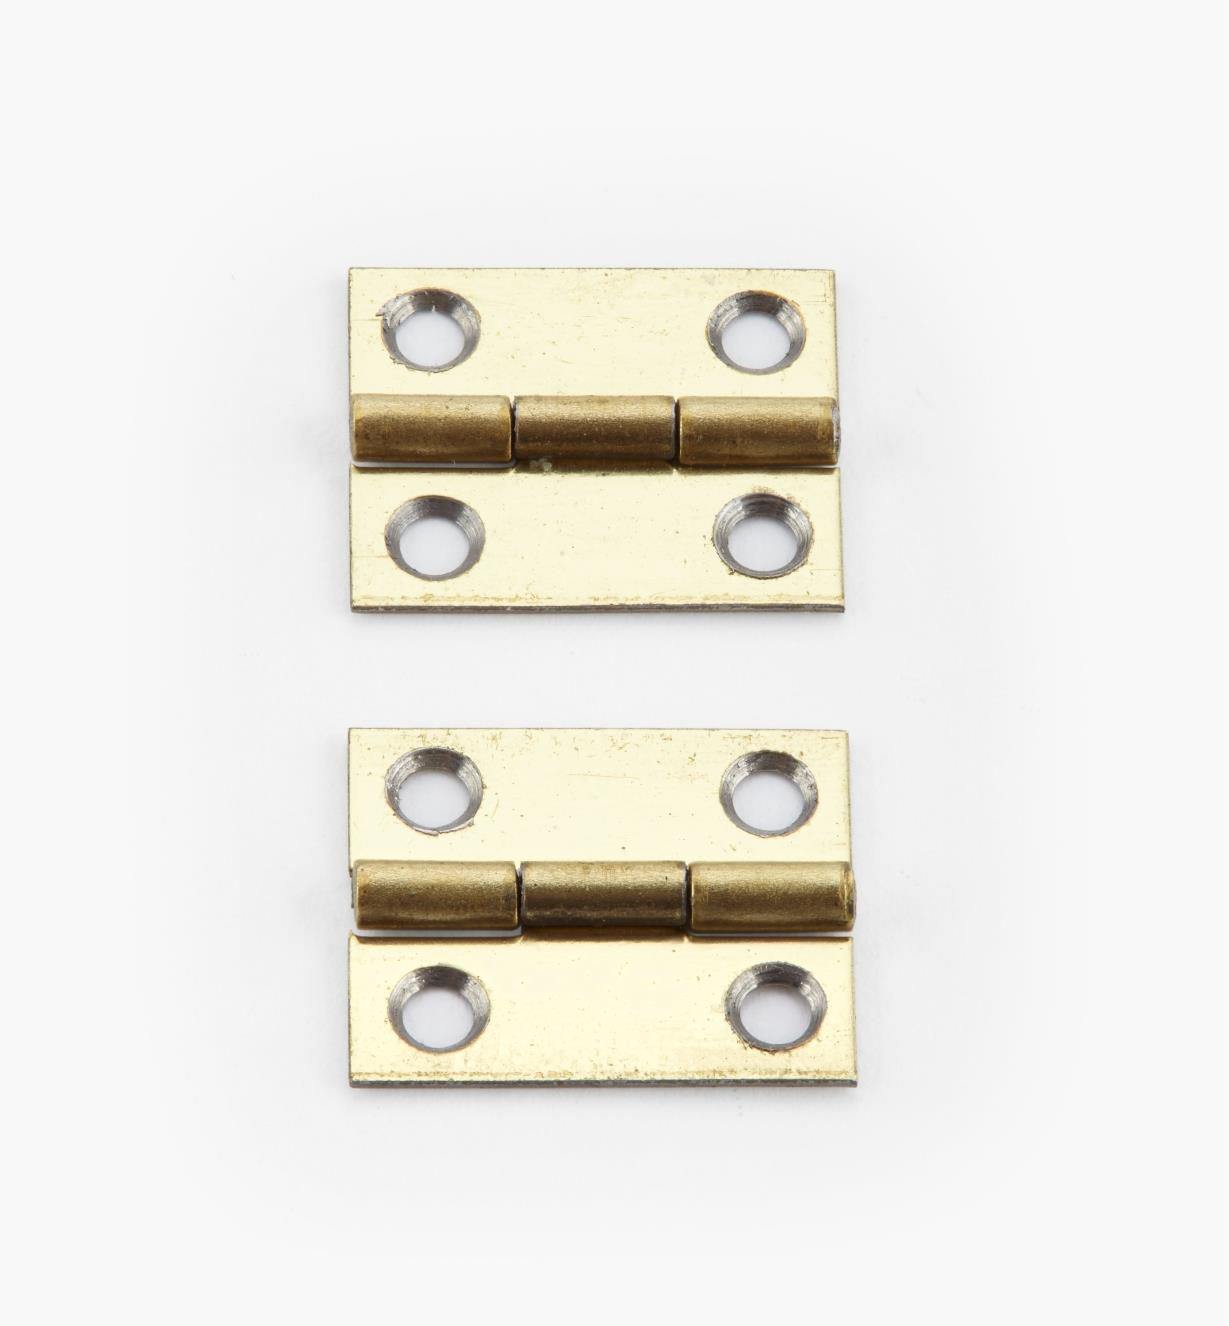 00D3005 - 15mm x 12mm Small Box Hinges, pr.